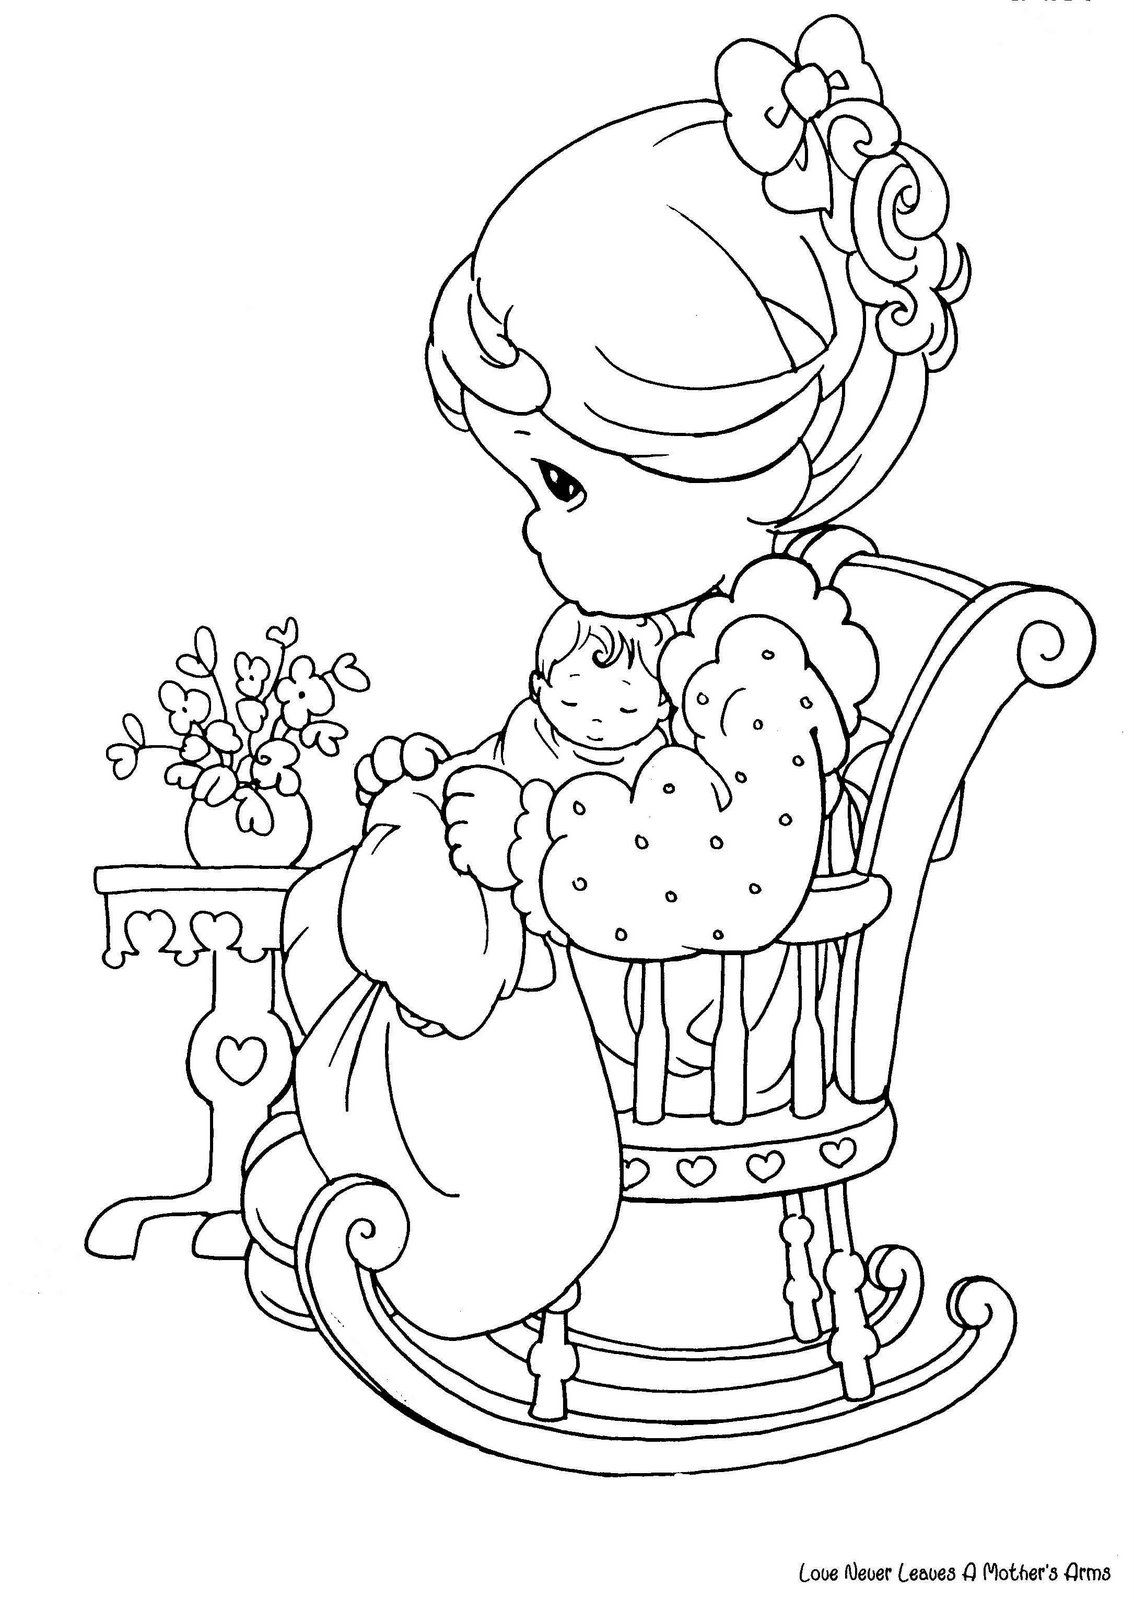 DIBUJOS PARA COLOREAR: PRECIOUS MOMENTS | Coloring | Pinterest ...